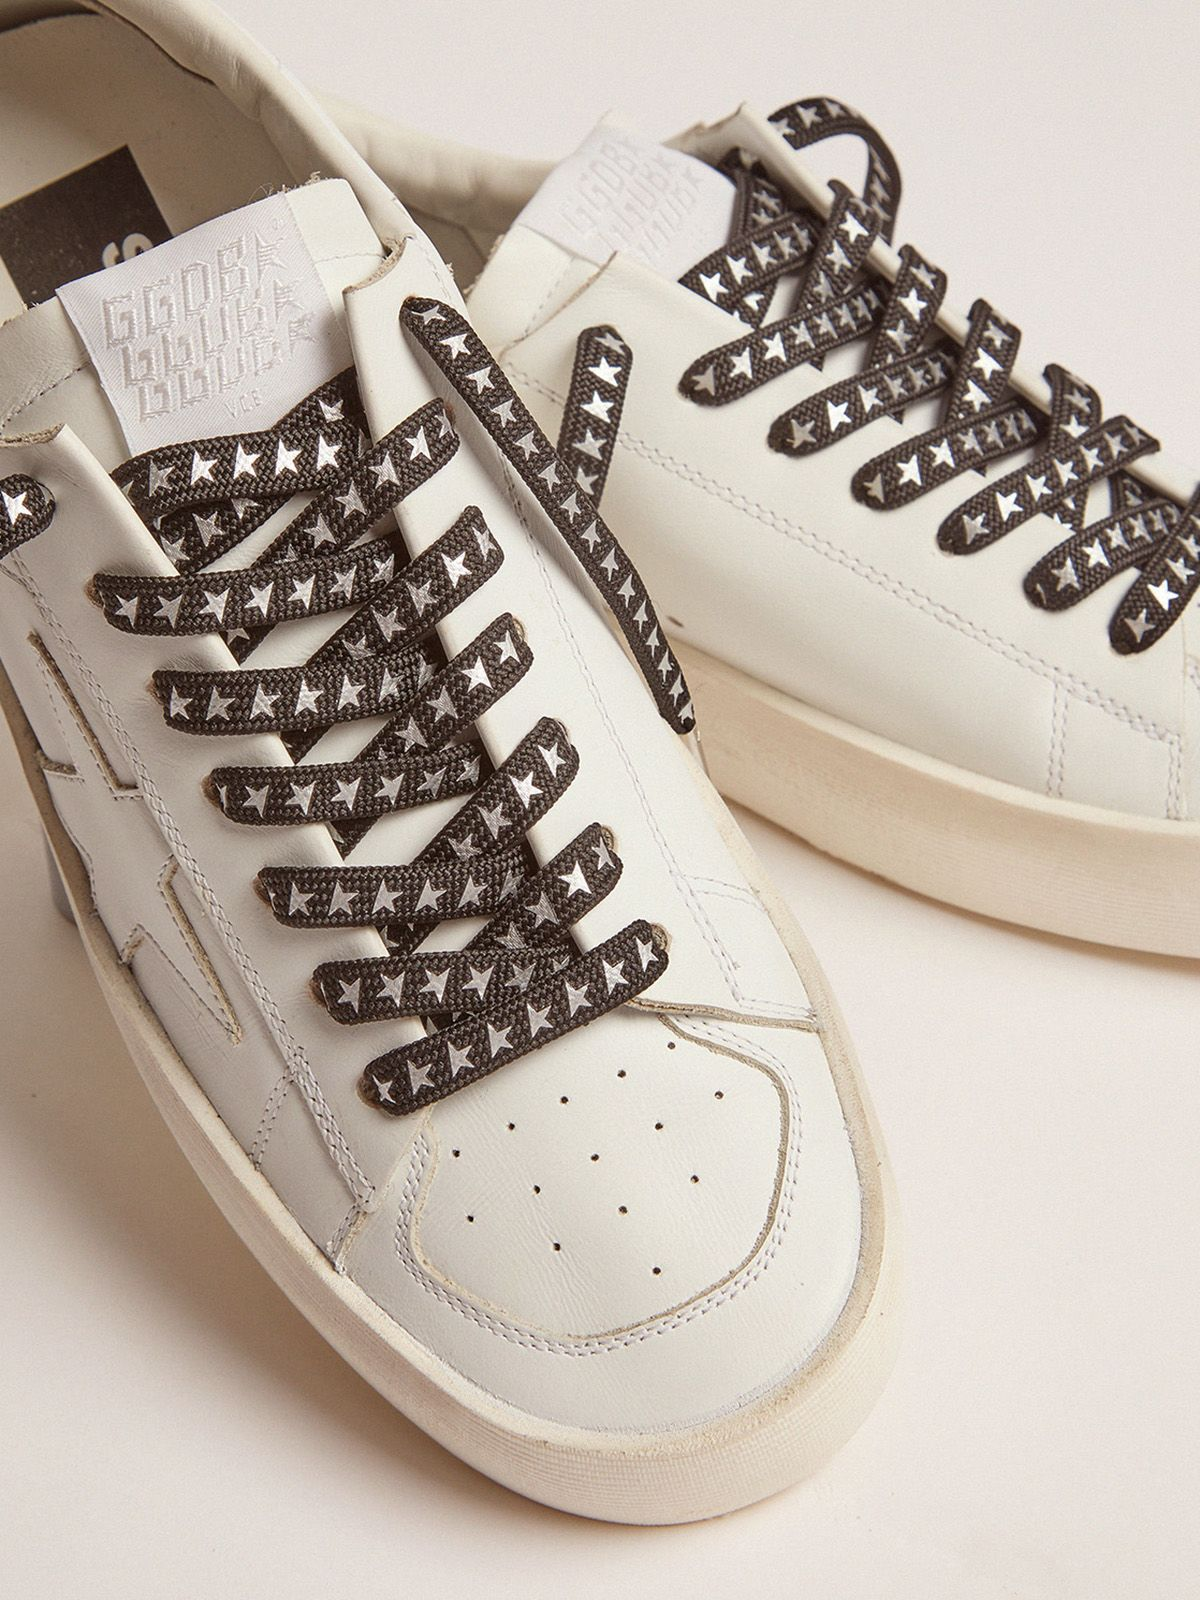 Golden Goose - Men's black laces with silver stars in